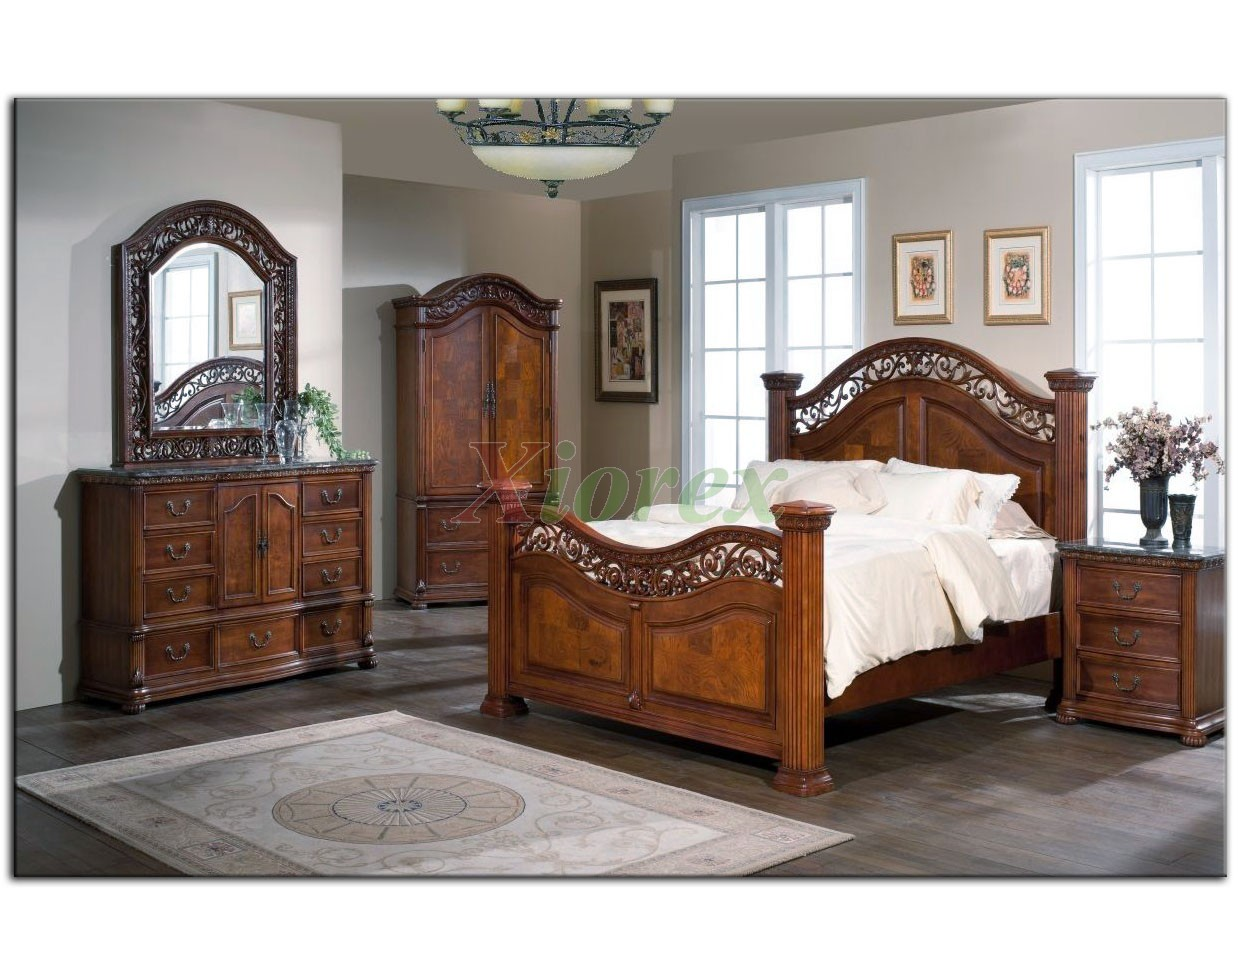 Poster bedroom furniture set 114 xiorex for Bedroom furniture furniture